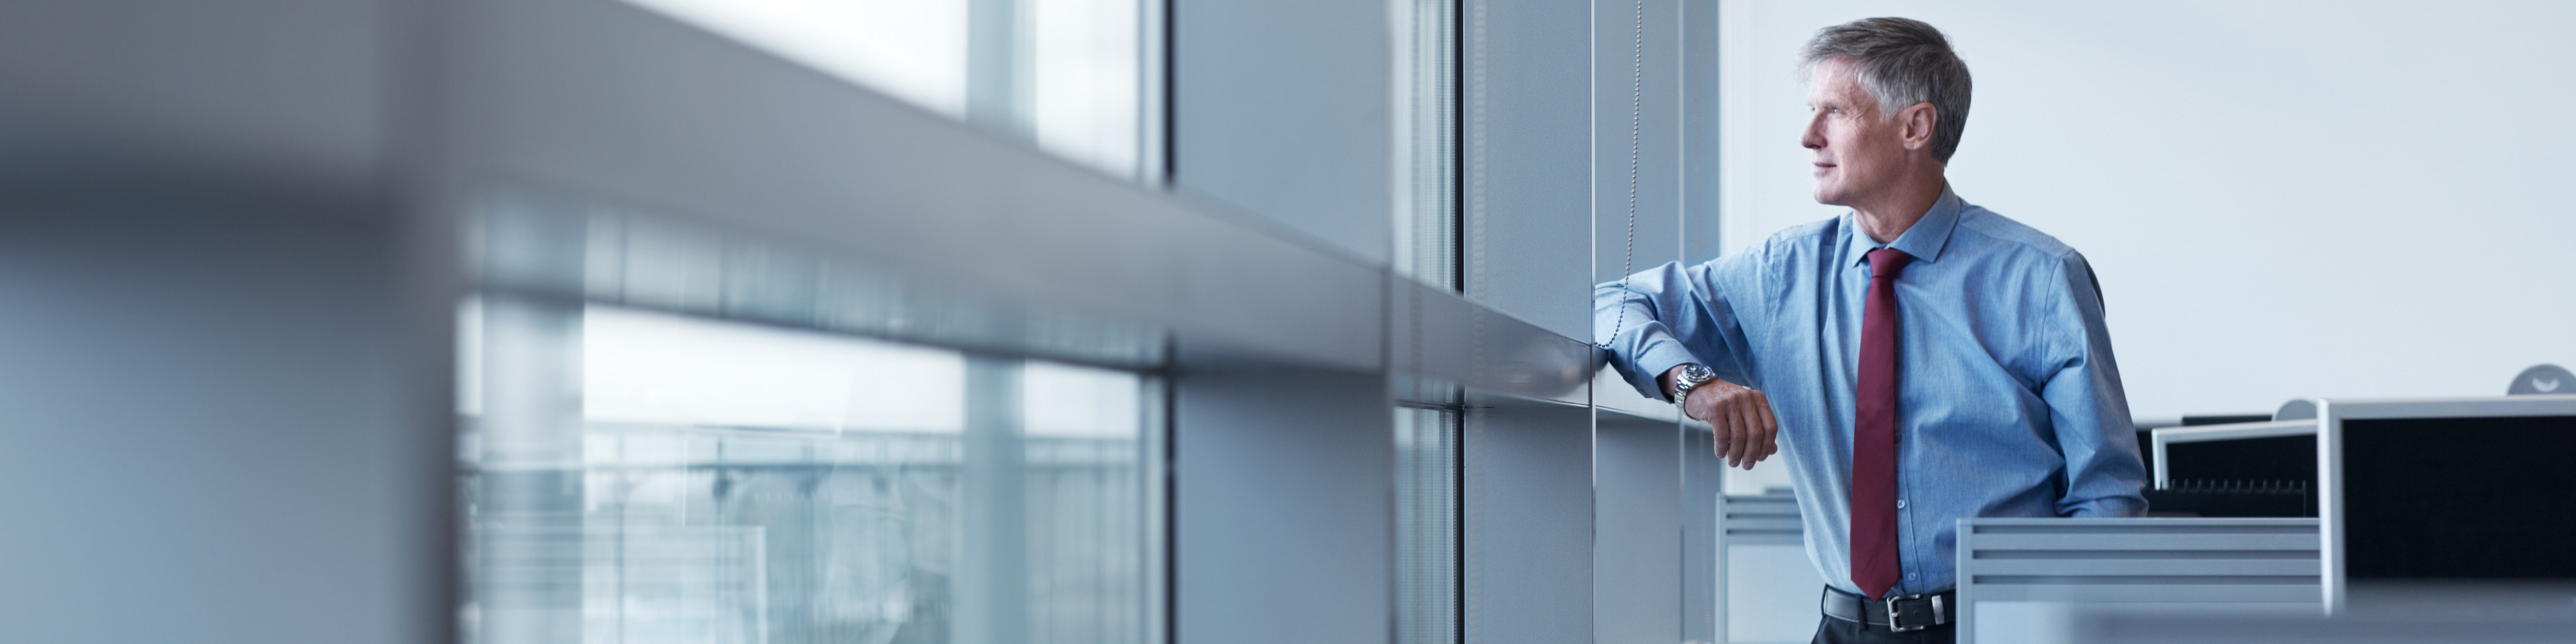 Shot of a mature businessman looking out the window of his office